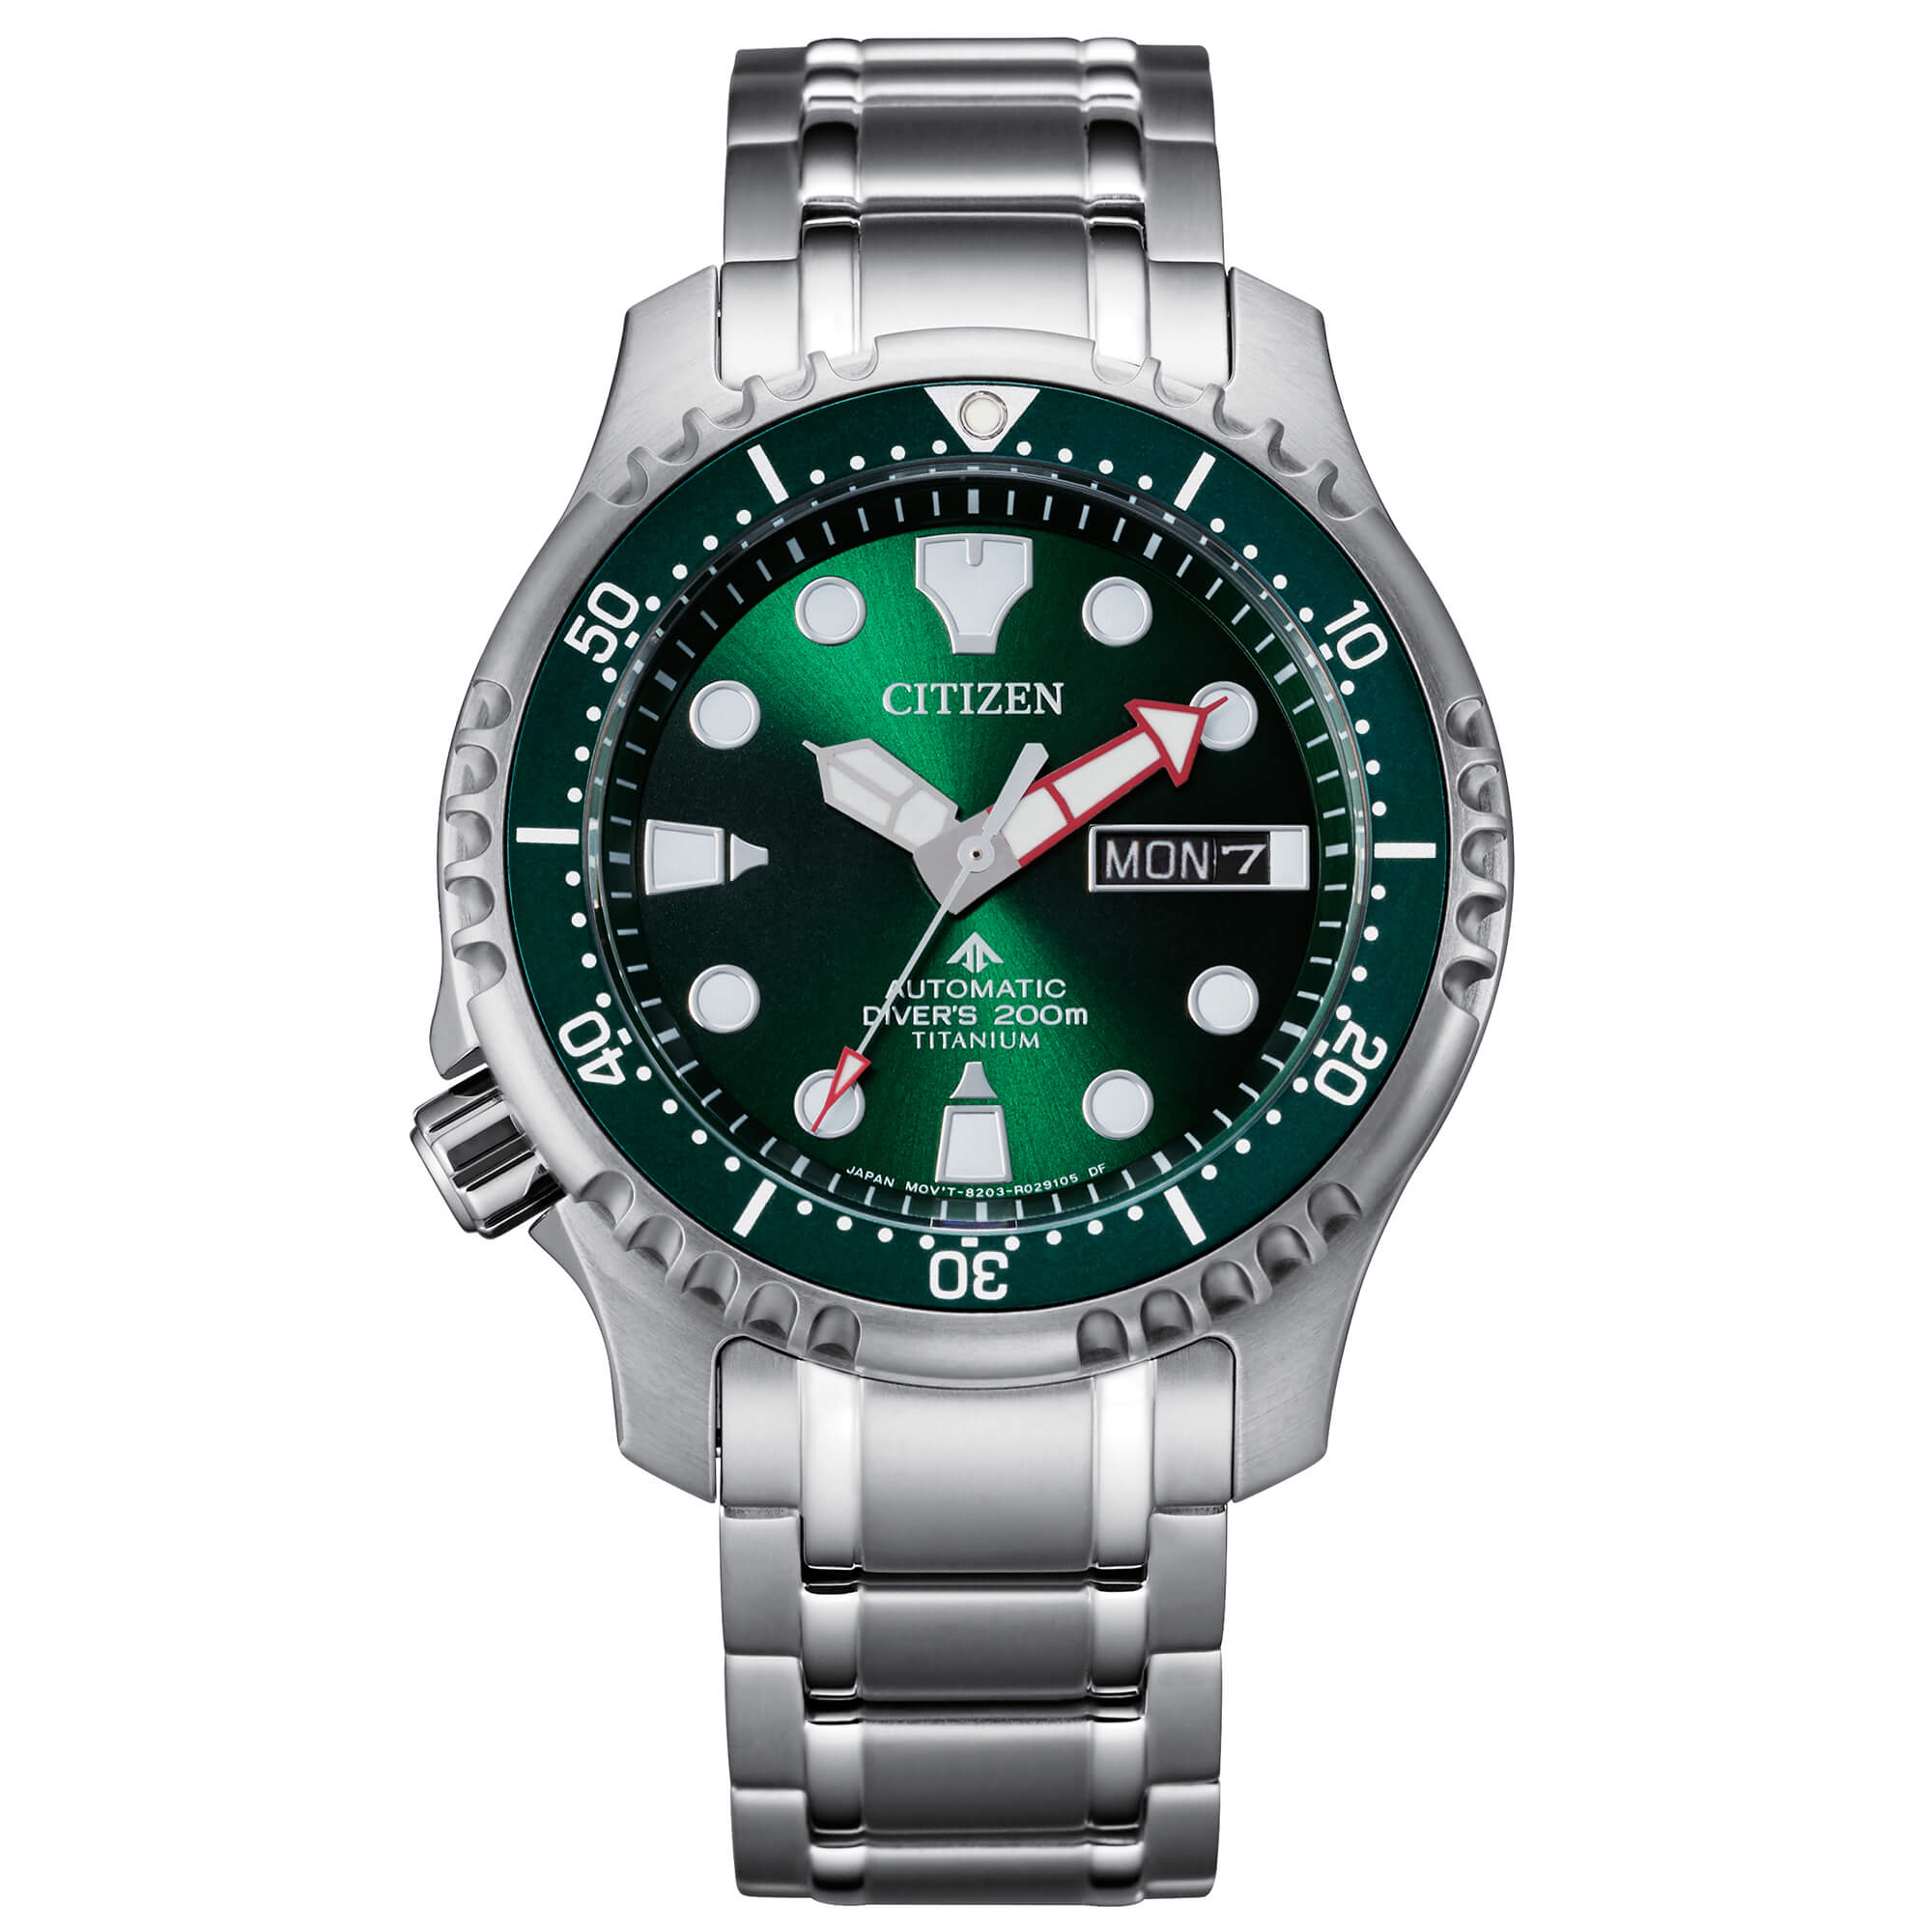 Citizen Watch Italy | Diver's Automatic 200 mt Super Titanio